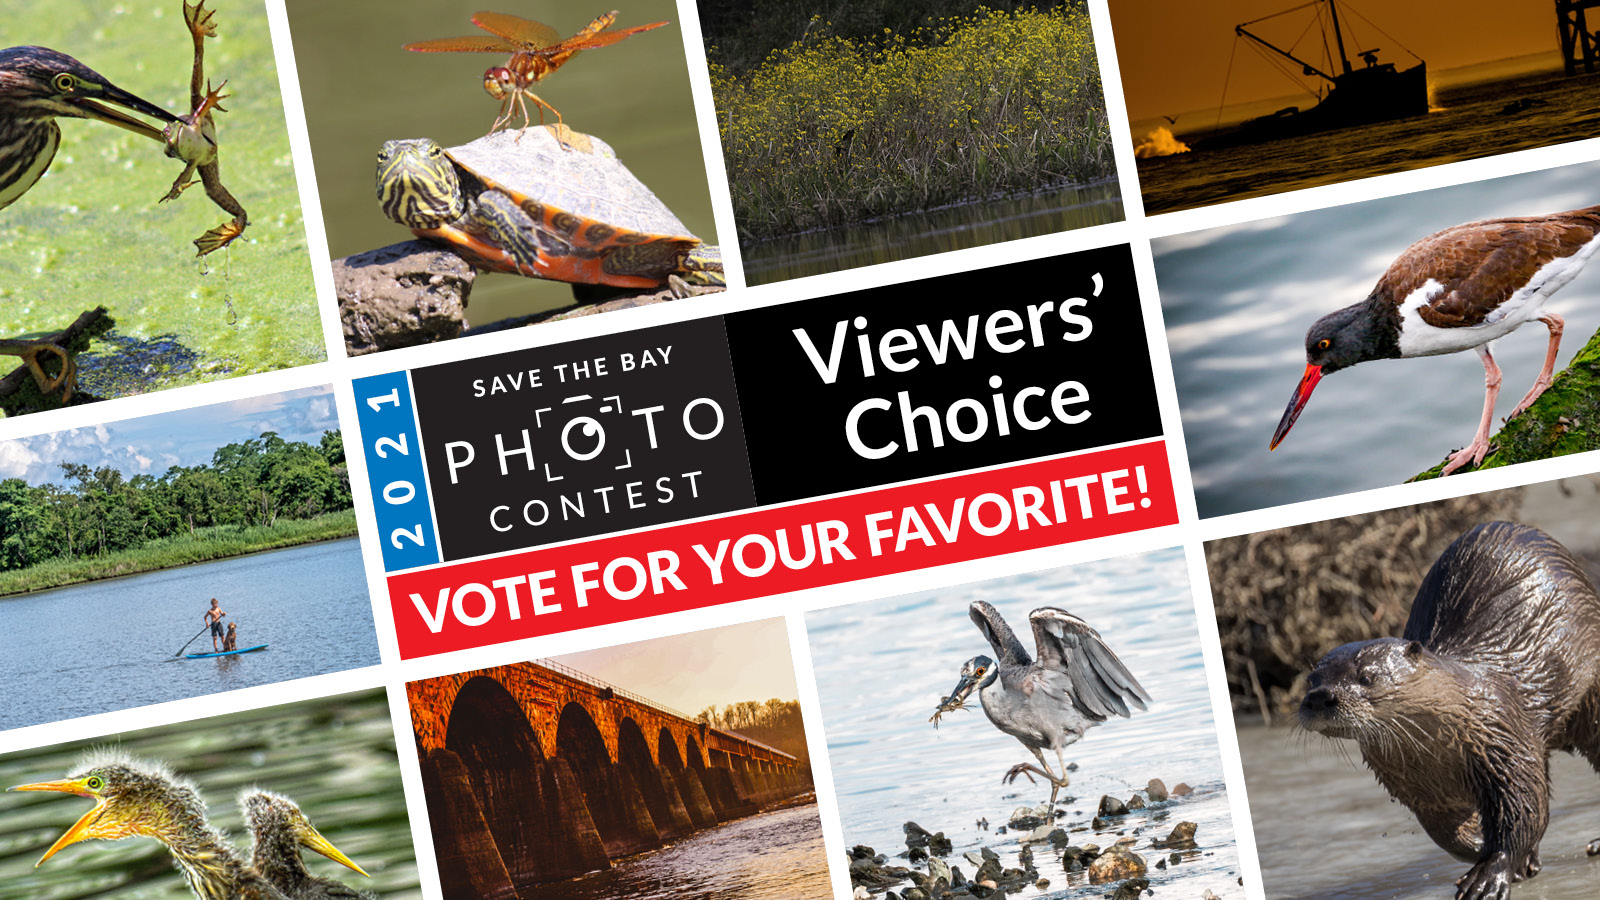 2021 Save the Bay Photo Contest Viewer's Choice - Vote for your favorite!